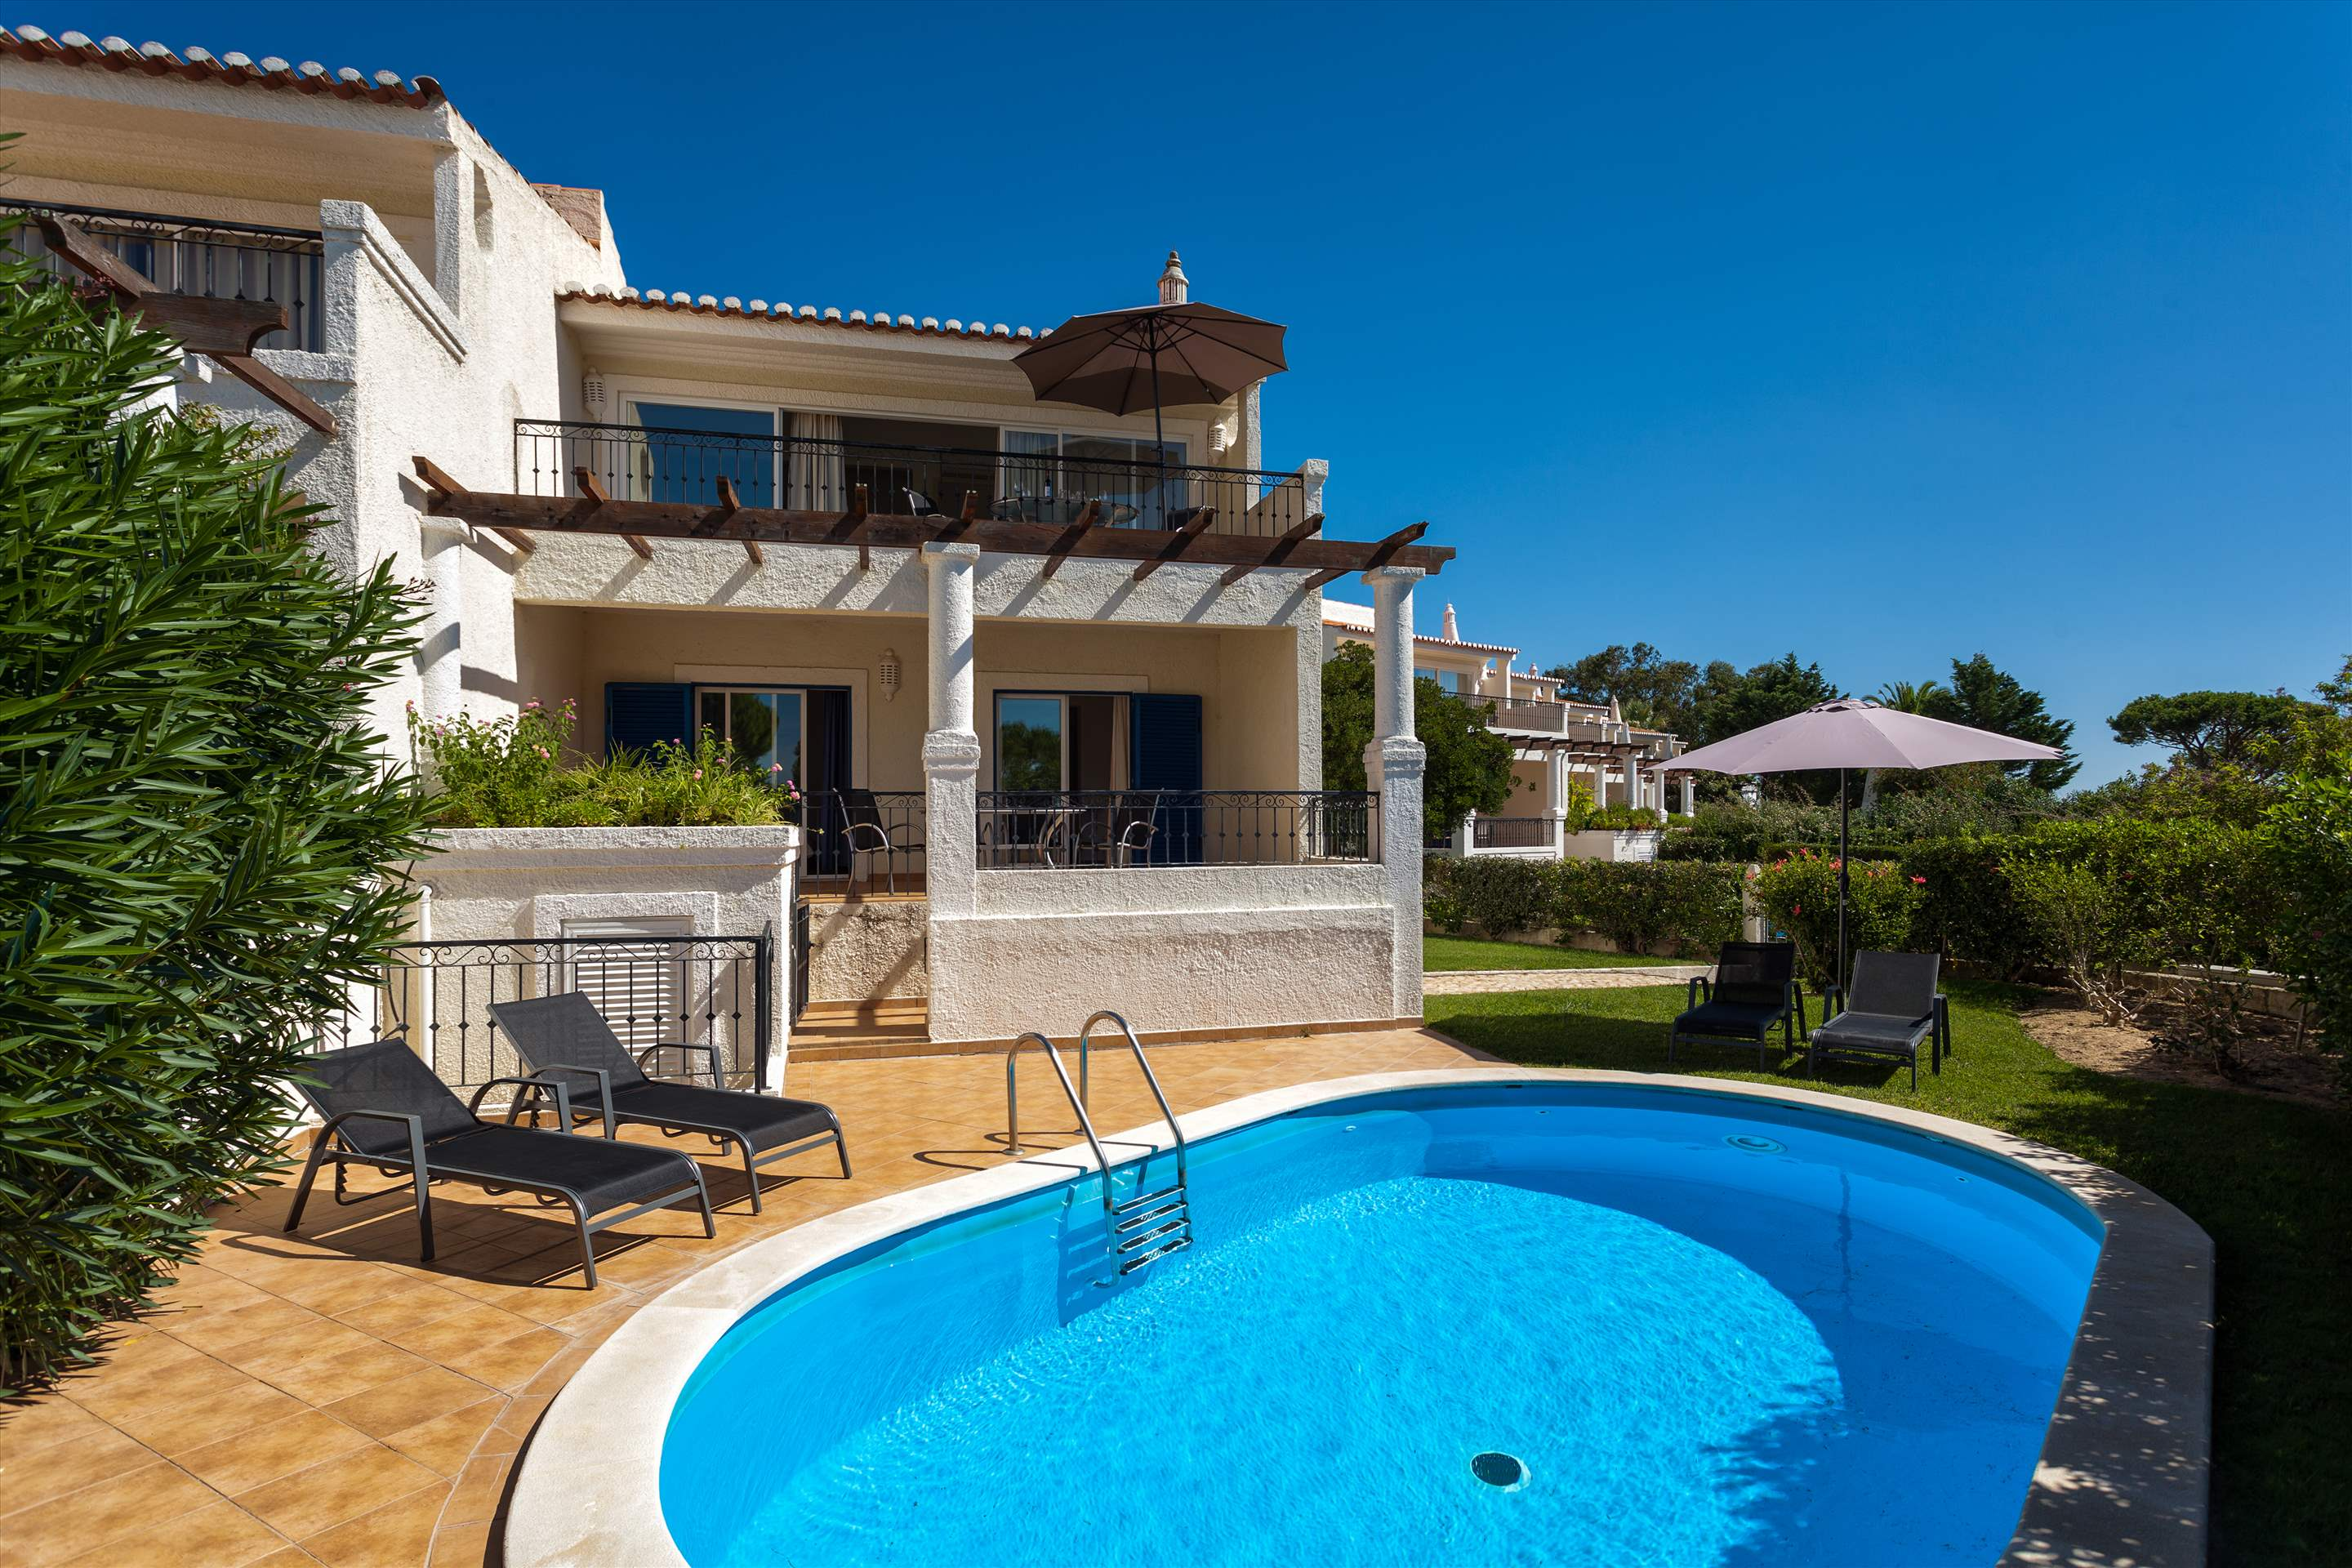 Villa Marisol, 3 bedroom villa in Vale do Lobo, Algarve Photo #10